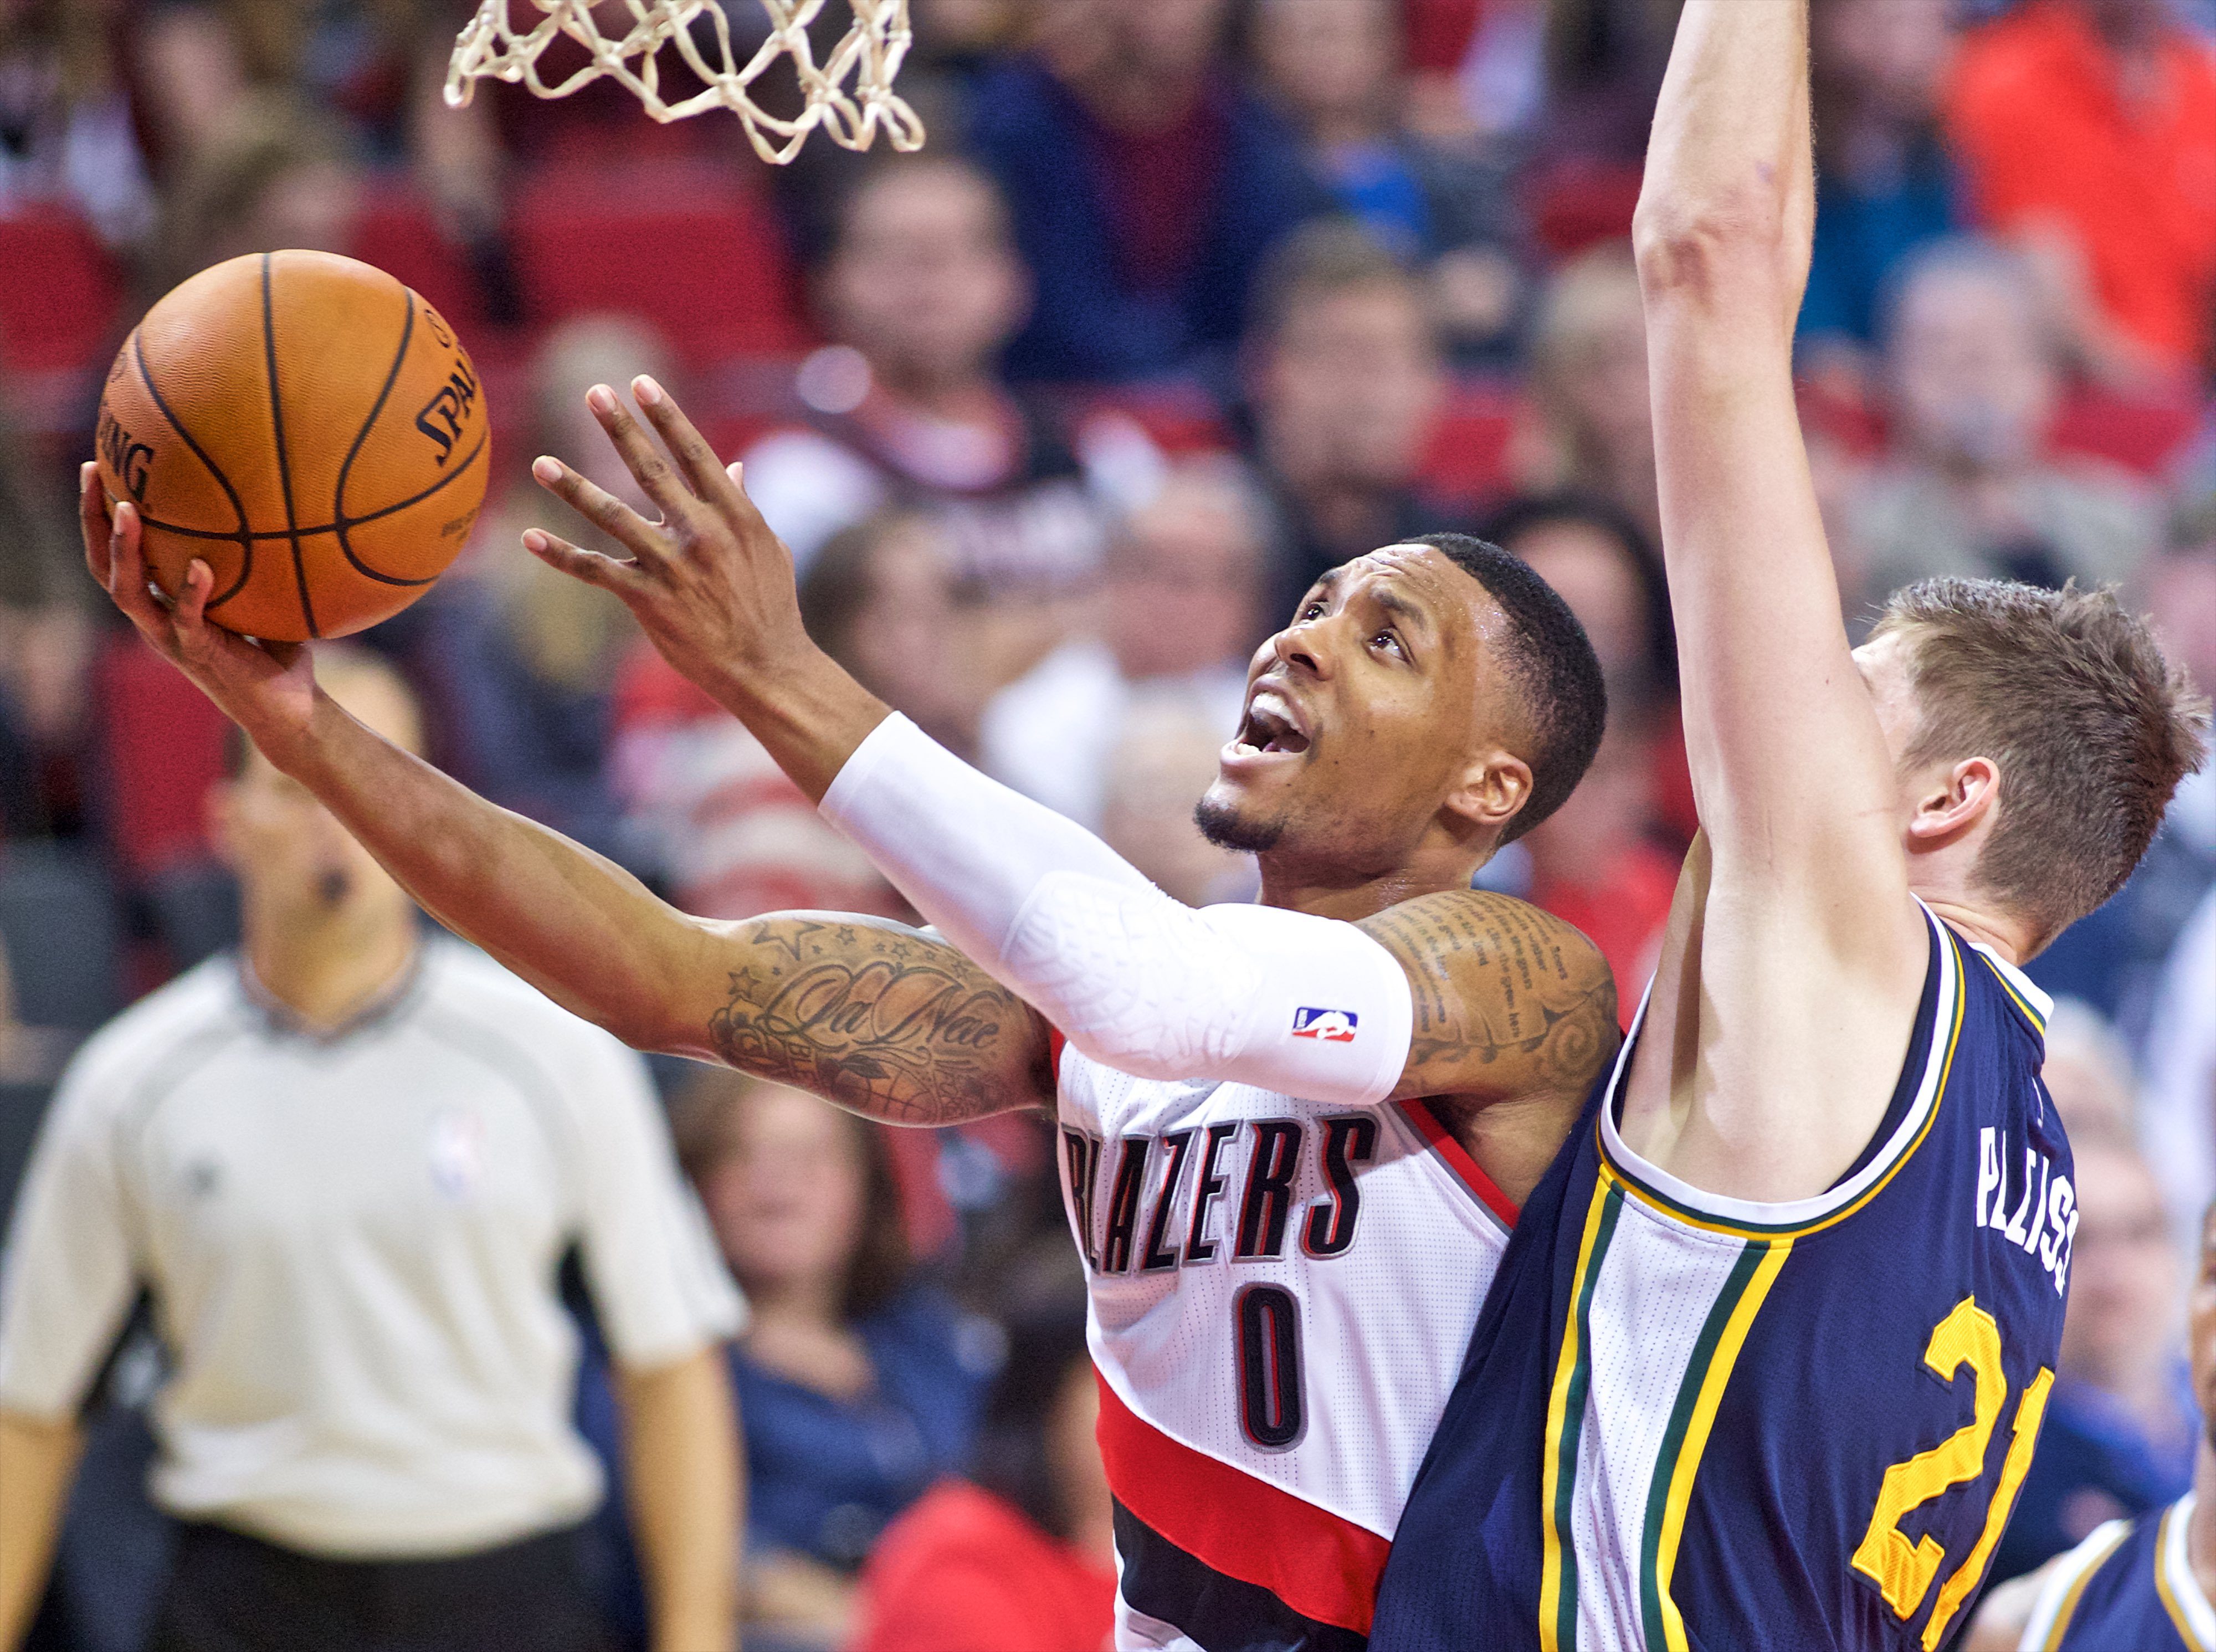 Portland Trail Blazers guard Damian Lillard, left, shoots over Utah Jazz center Tibor Pleiss during the first half of an NBA preseason basketball game in Portland, Ore., Sunday, Oct. 18, 2015. (AP Photo/Craig Mitchelldyer)